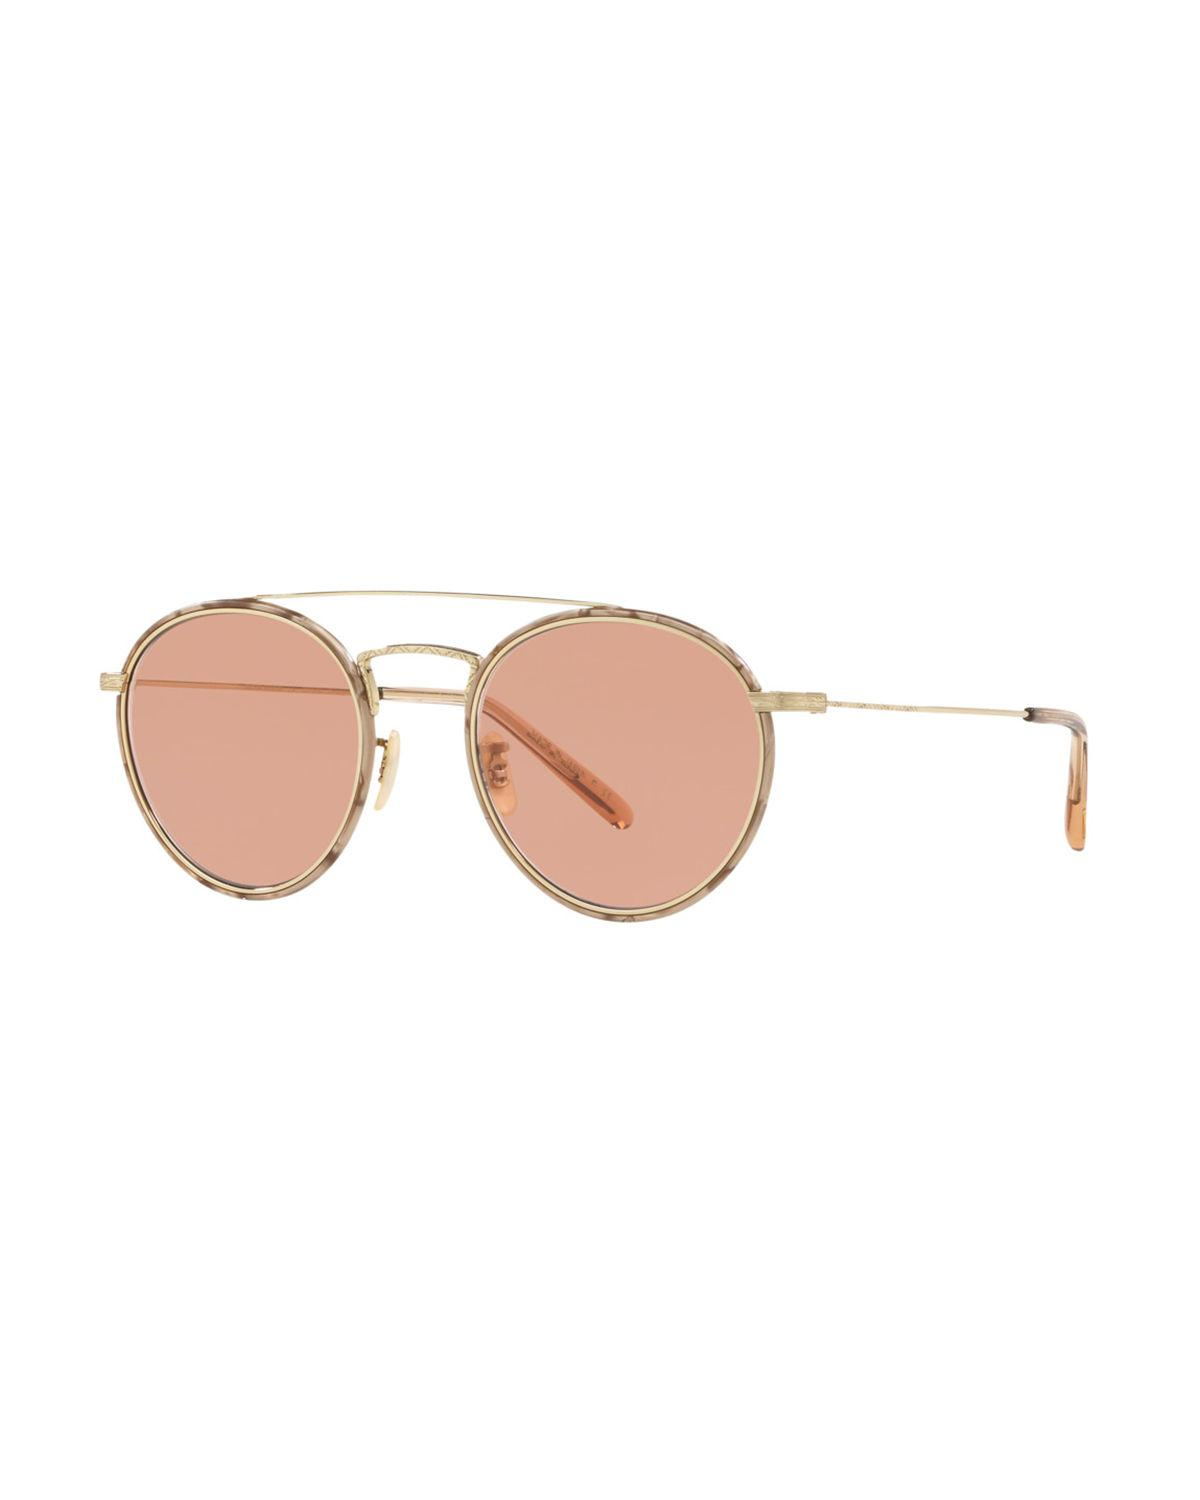 636bf371021 Oliver Peoples. Women s Pink Ellice Photochromic Titanium Round Sunglasses.   585 From Neiman Marcus